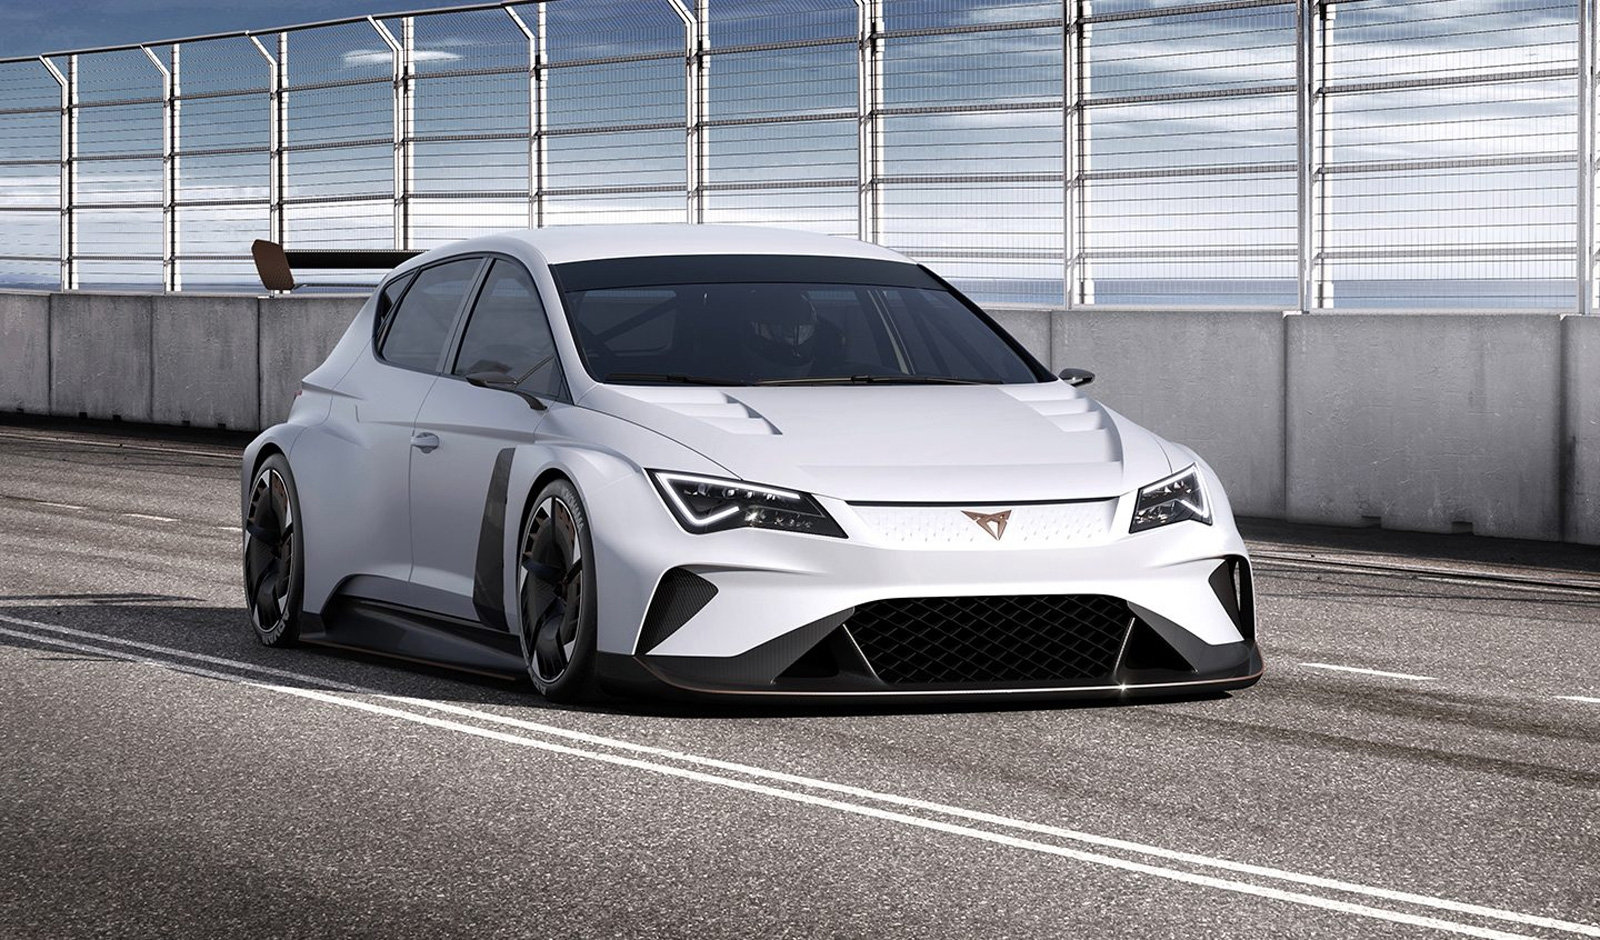 VW's Seat unveils the first fully electric touring-class race car | DeviceDaily.com